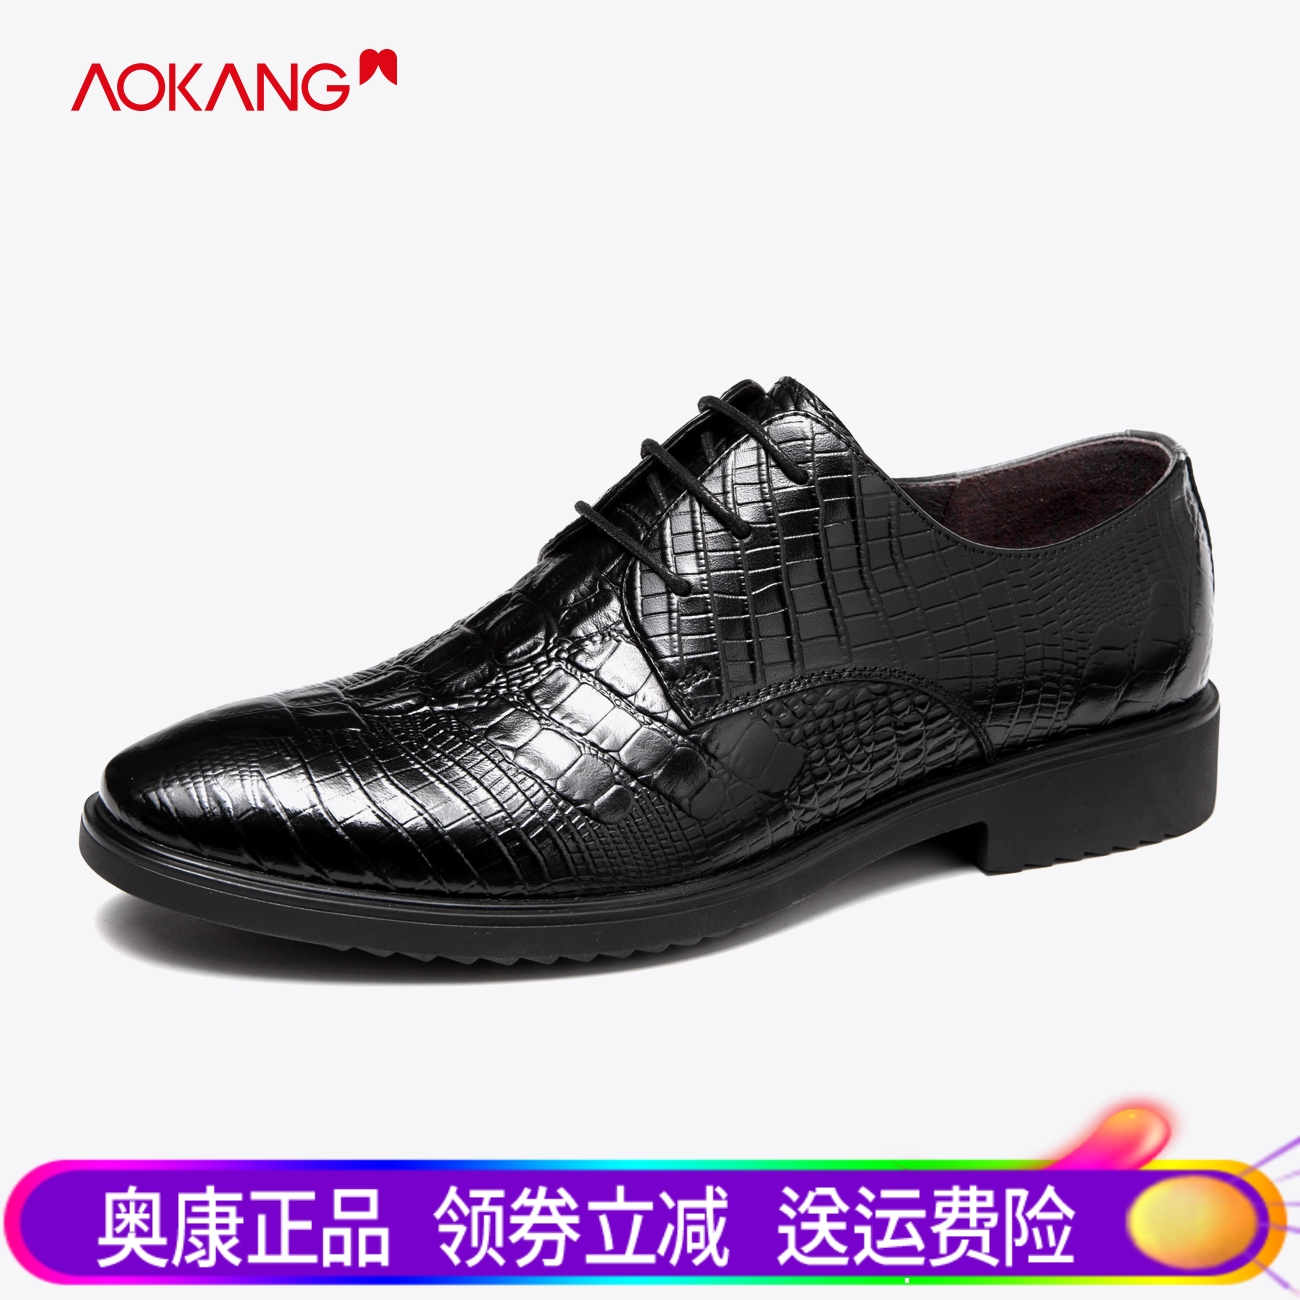 Aokang mens shoes 2020 spring new business dress leather shoes leather shoes crocodile pattern British style Derby shoes